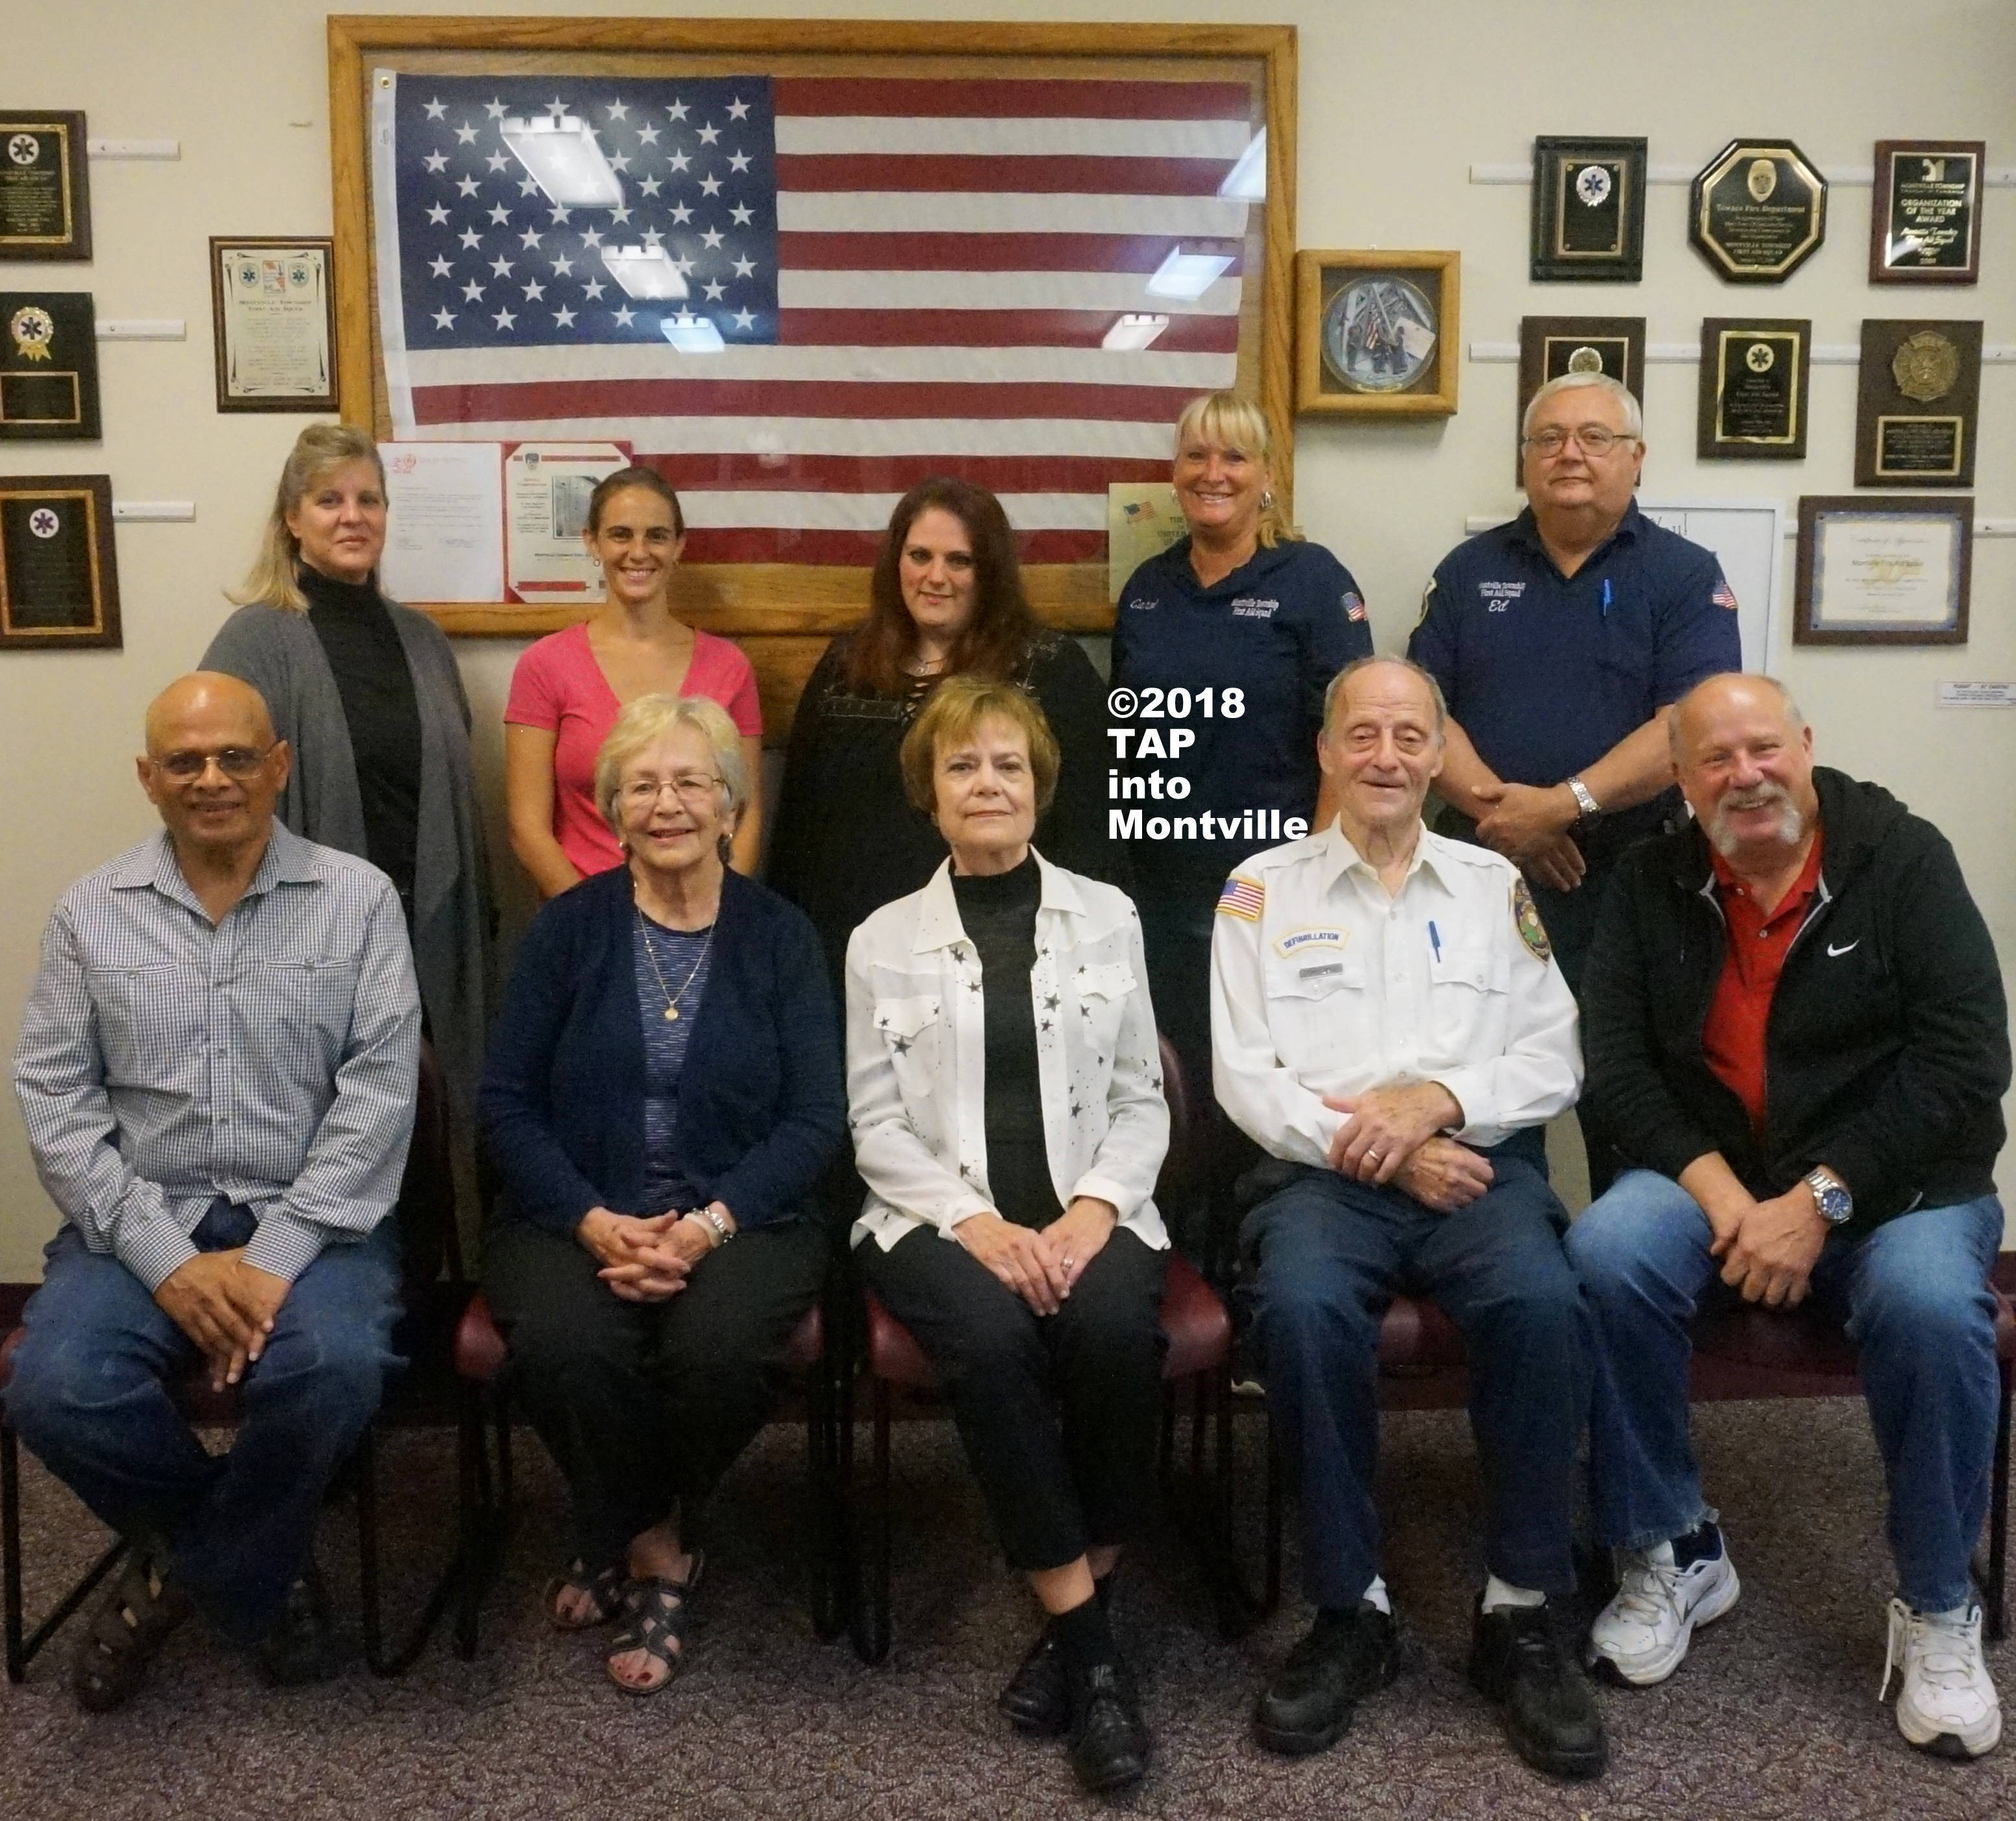 a Ten of the 15 Montville Vol First Aid Squa 9.11 Responders ©2018 TAPinto Montville   1.JPG